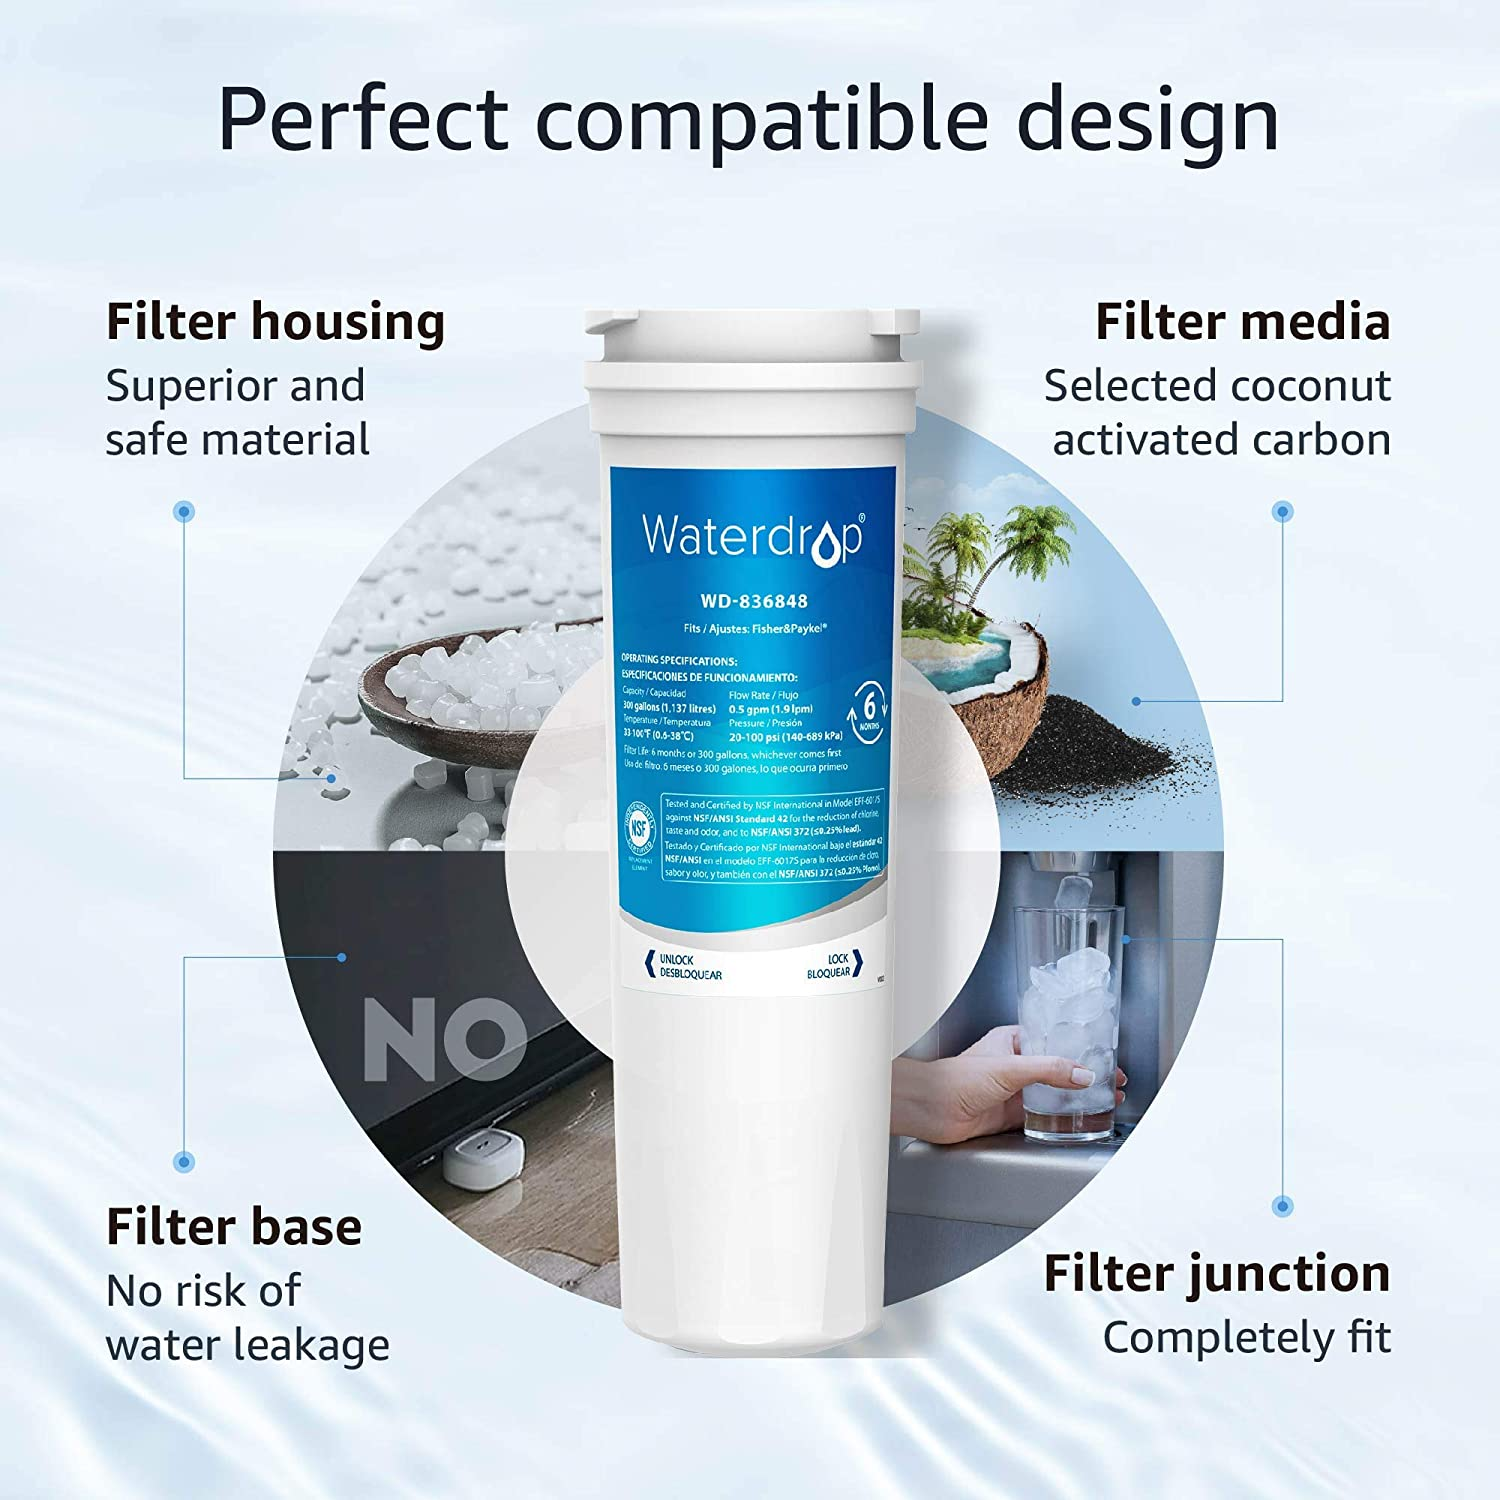 P15S-611625-6-PACK ReplacementBrand FP-1 Fisher and Paykel 836848 Comparable Refrigerator Water Filter Commercial Water Dist